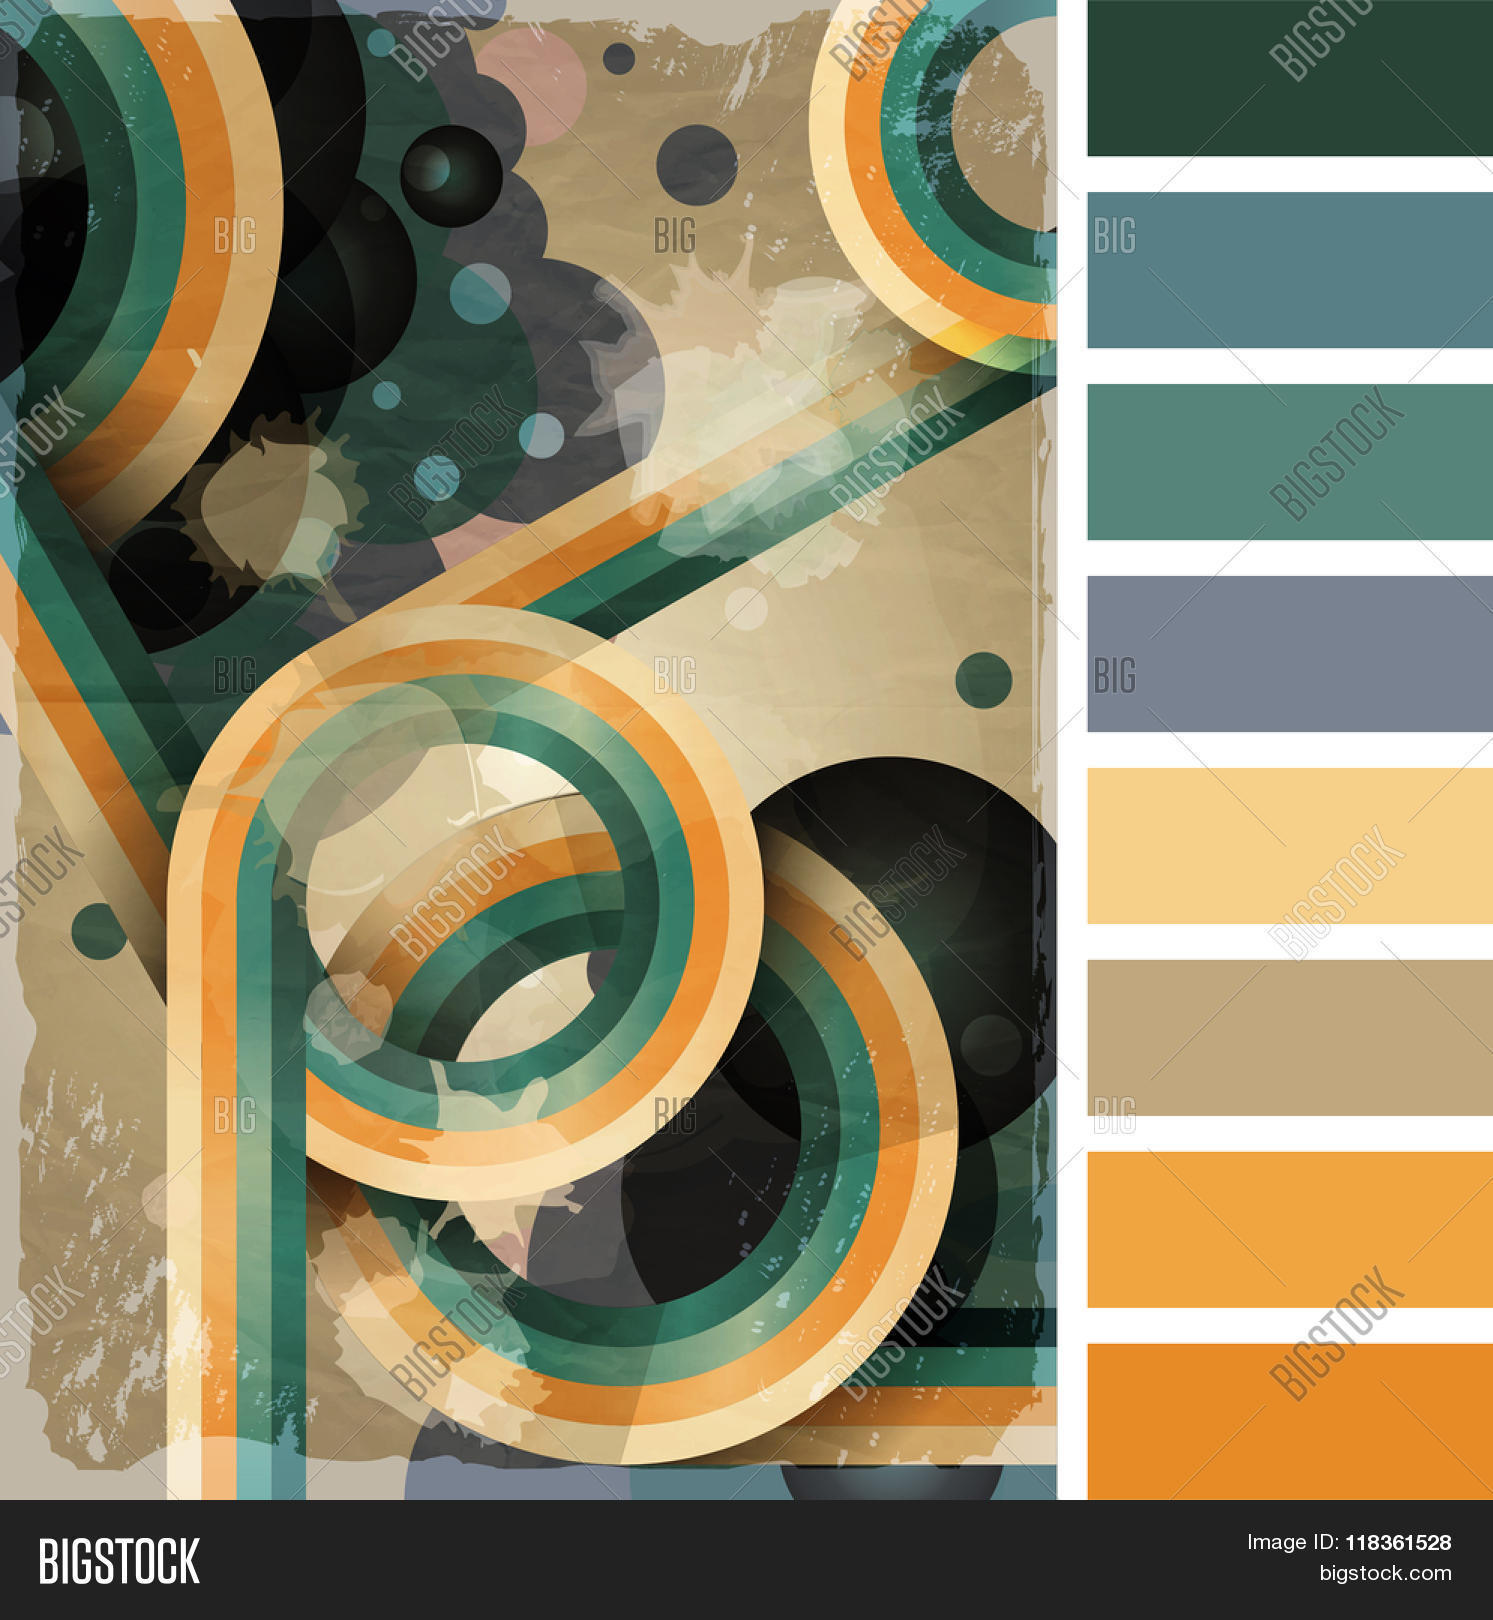 70s poster design template - Retro Poster Template With Bubbles Circles Lines And Paint Splashes 1960s 70s